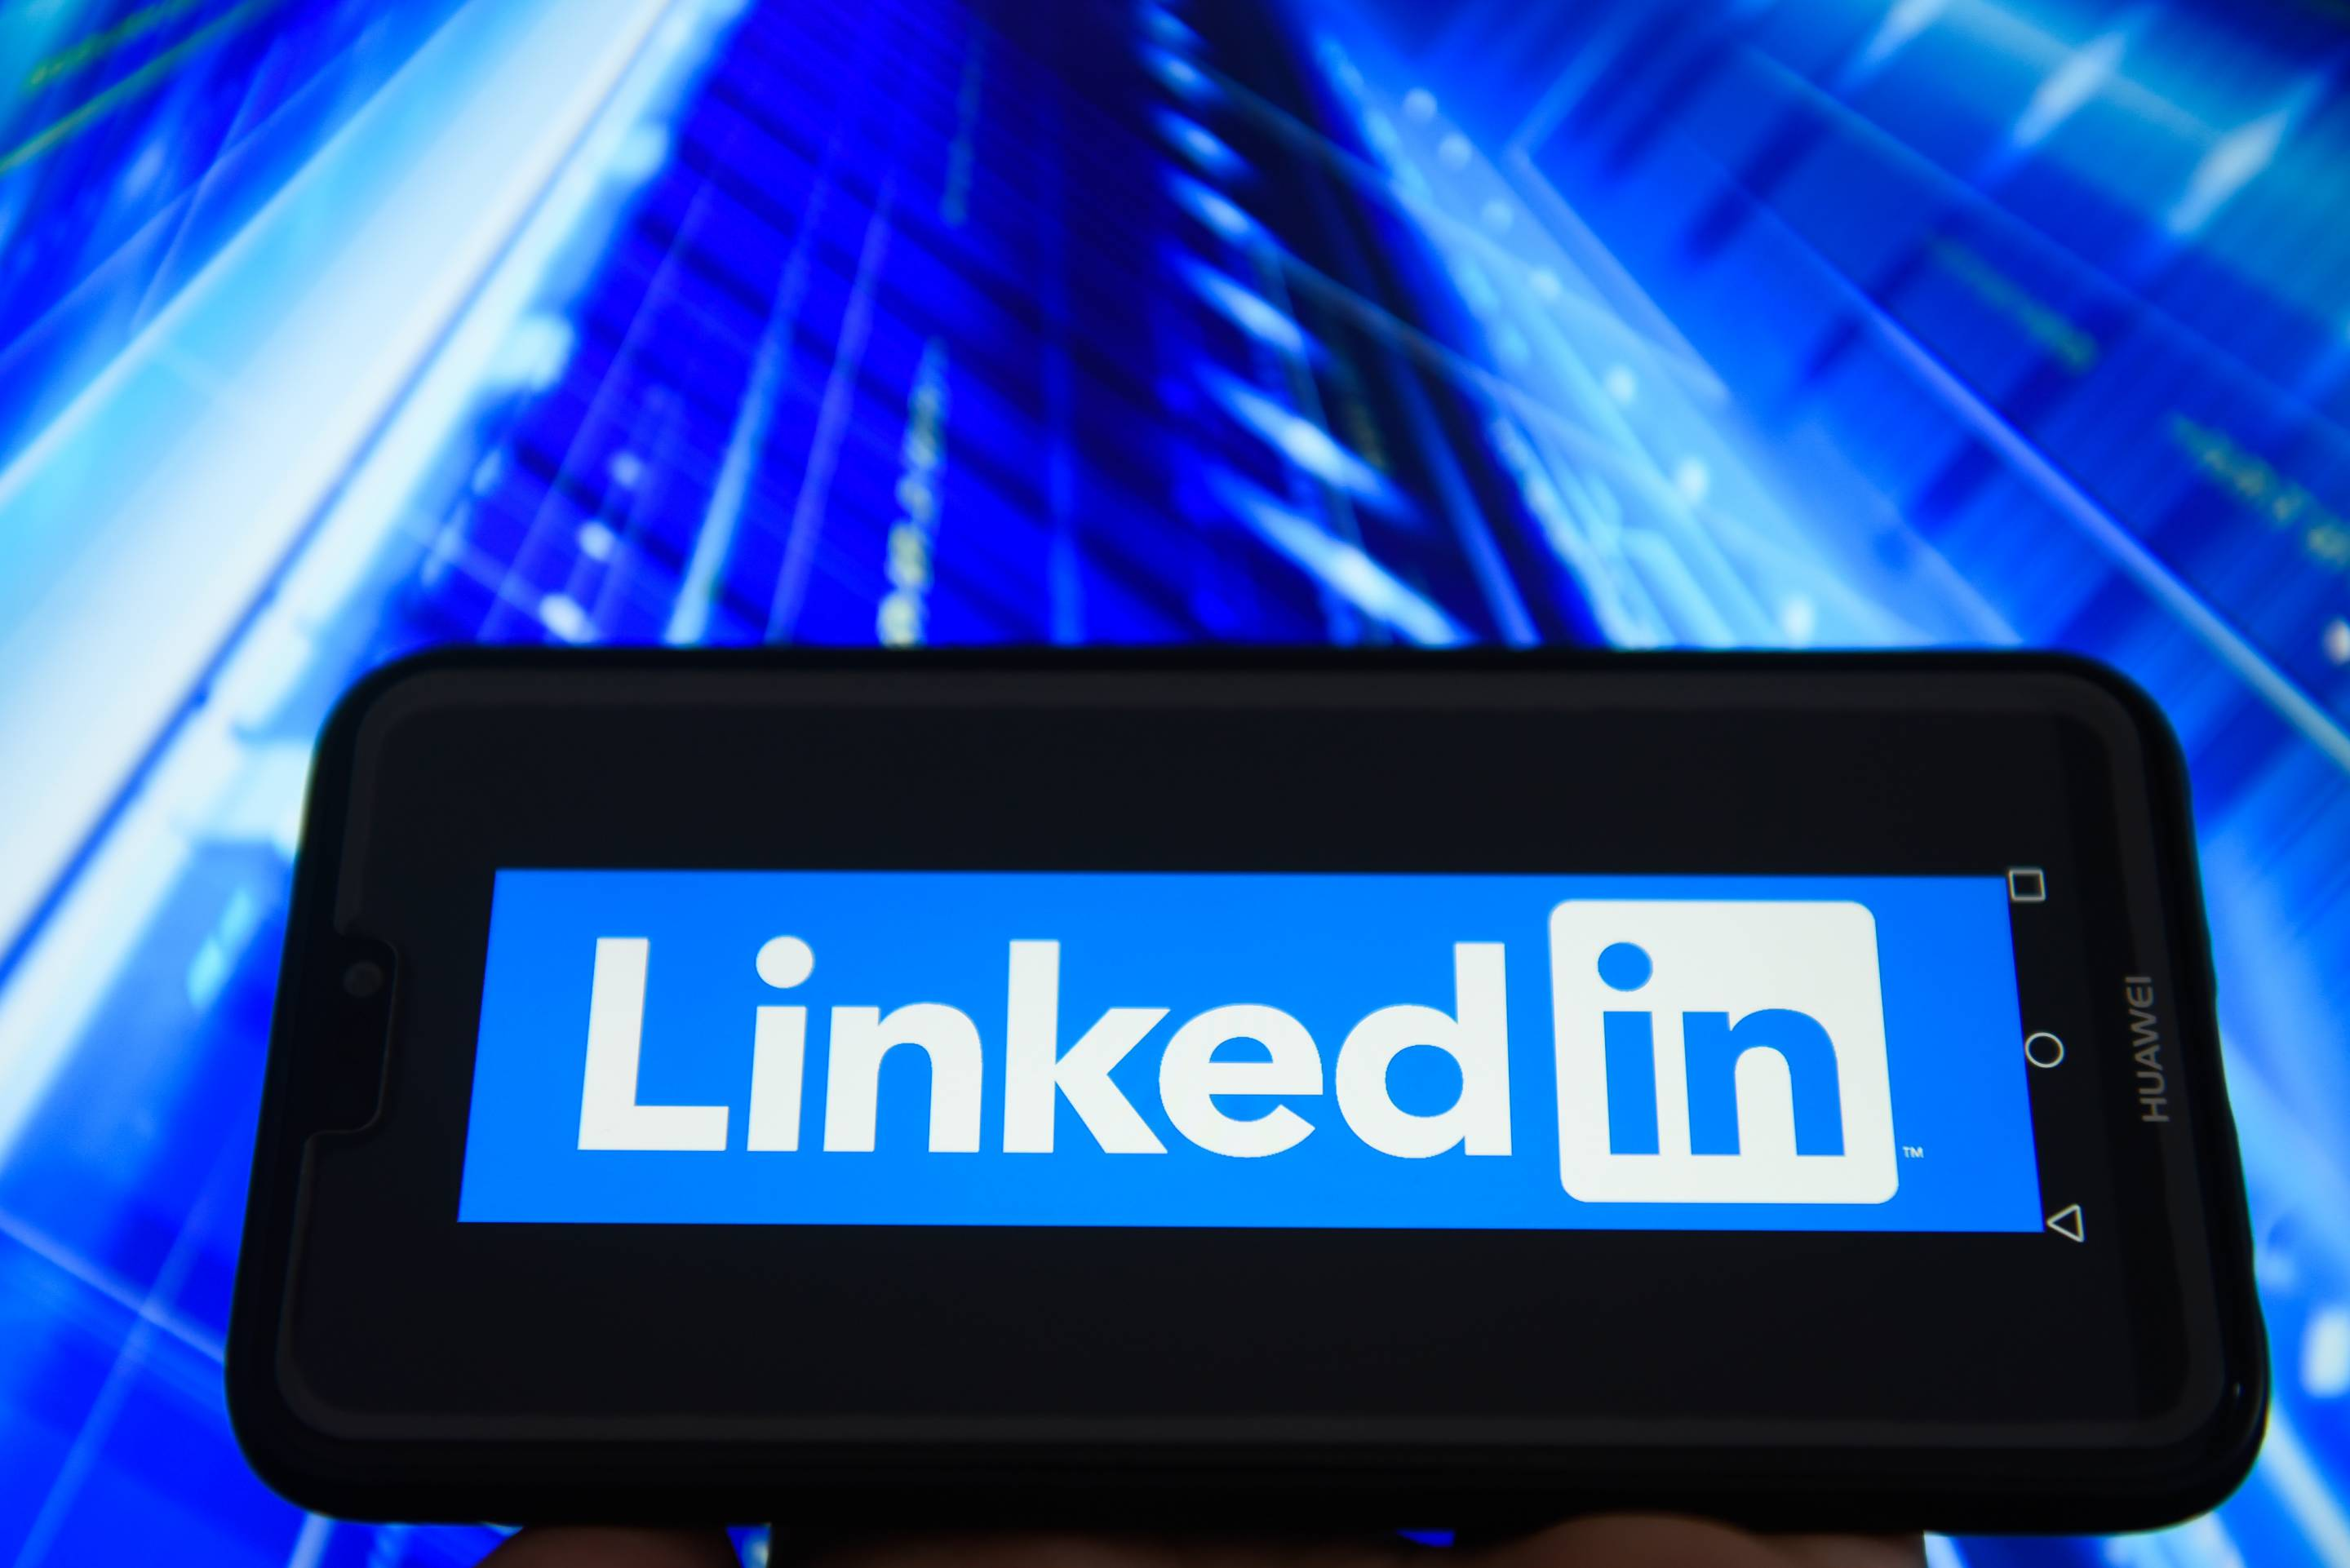 LinkedIn logo is seen on an Android mobile device